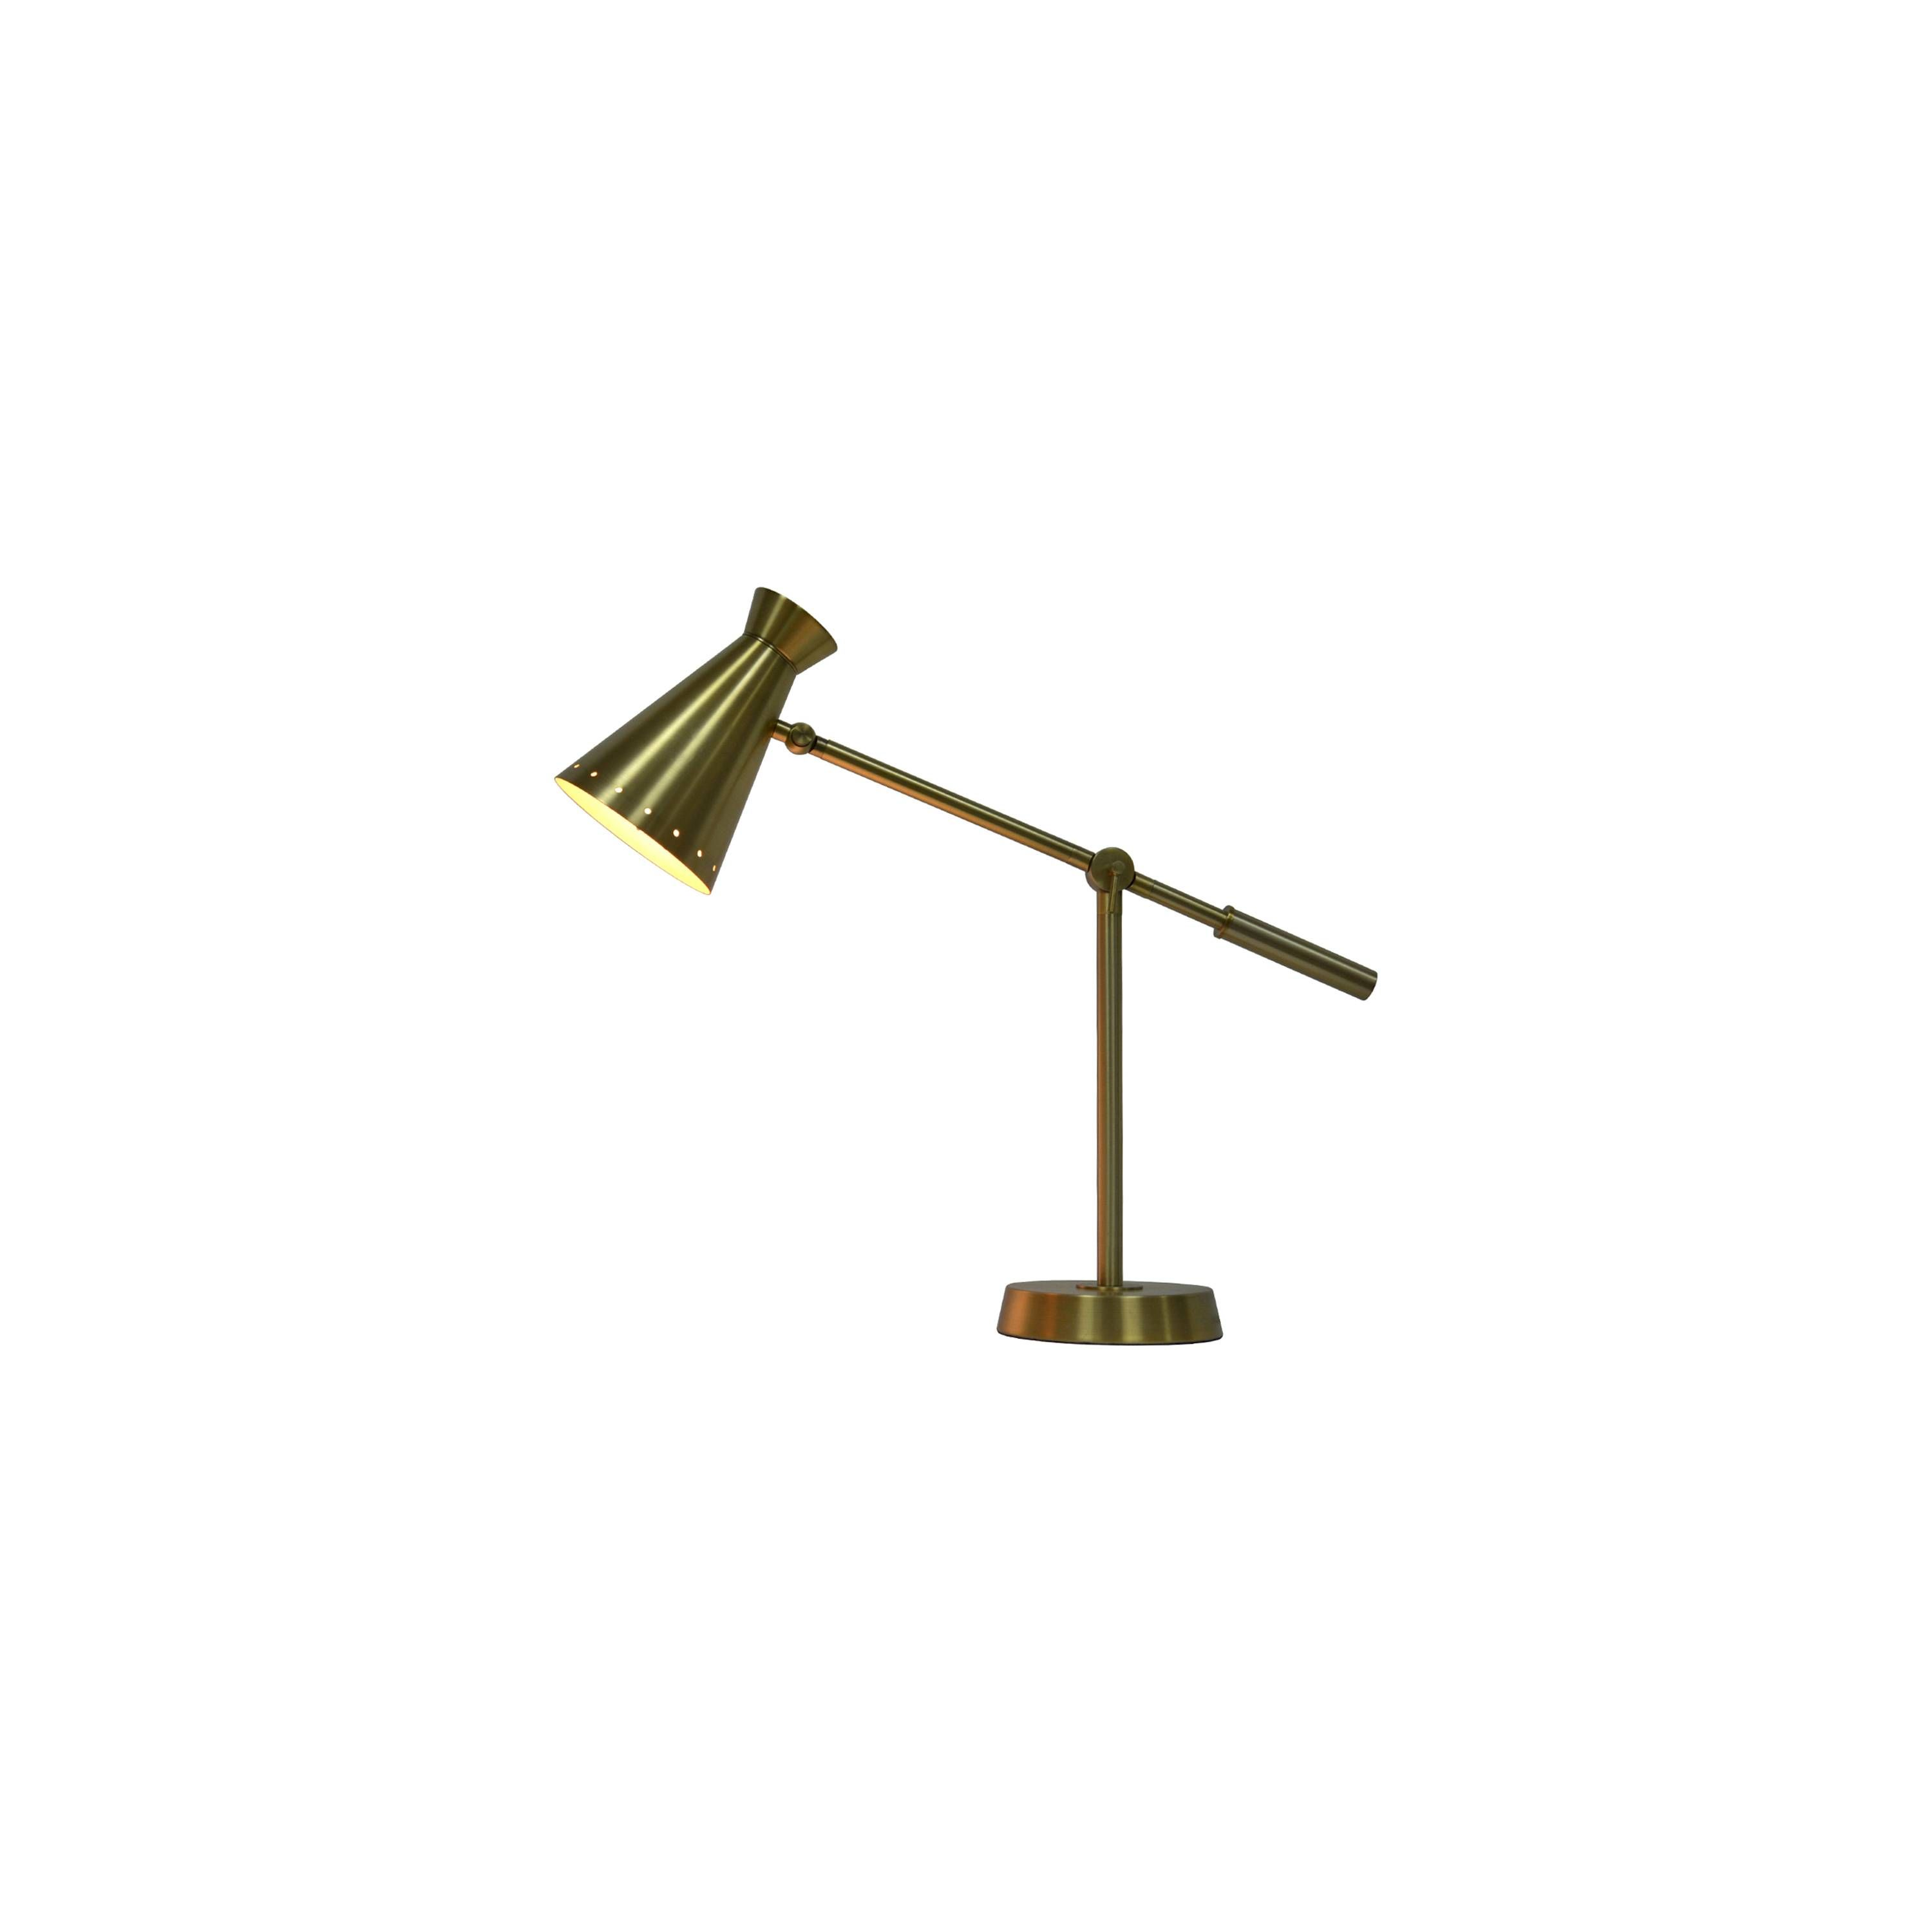 Perfect match to the writing desk | Desk lamp, Modern ...